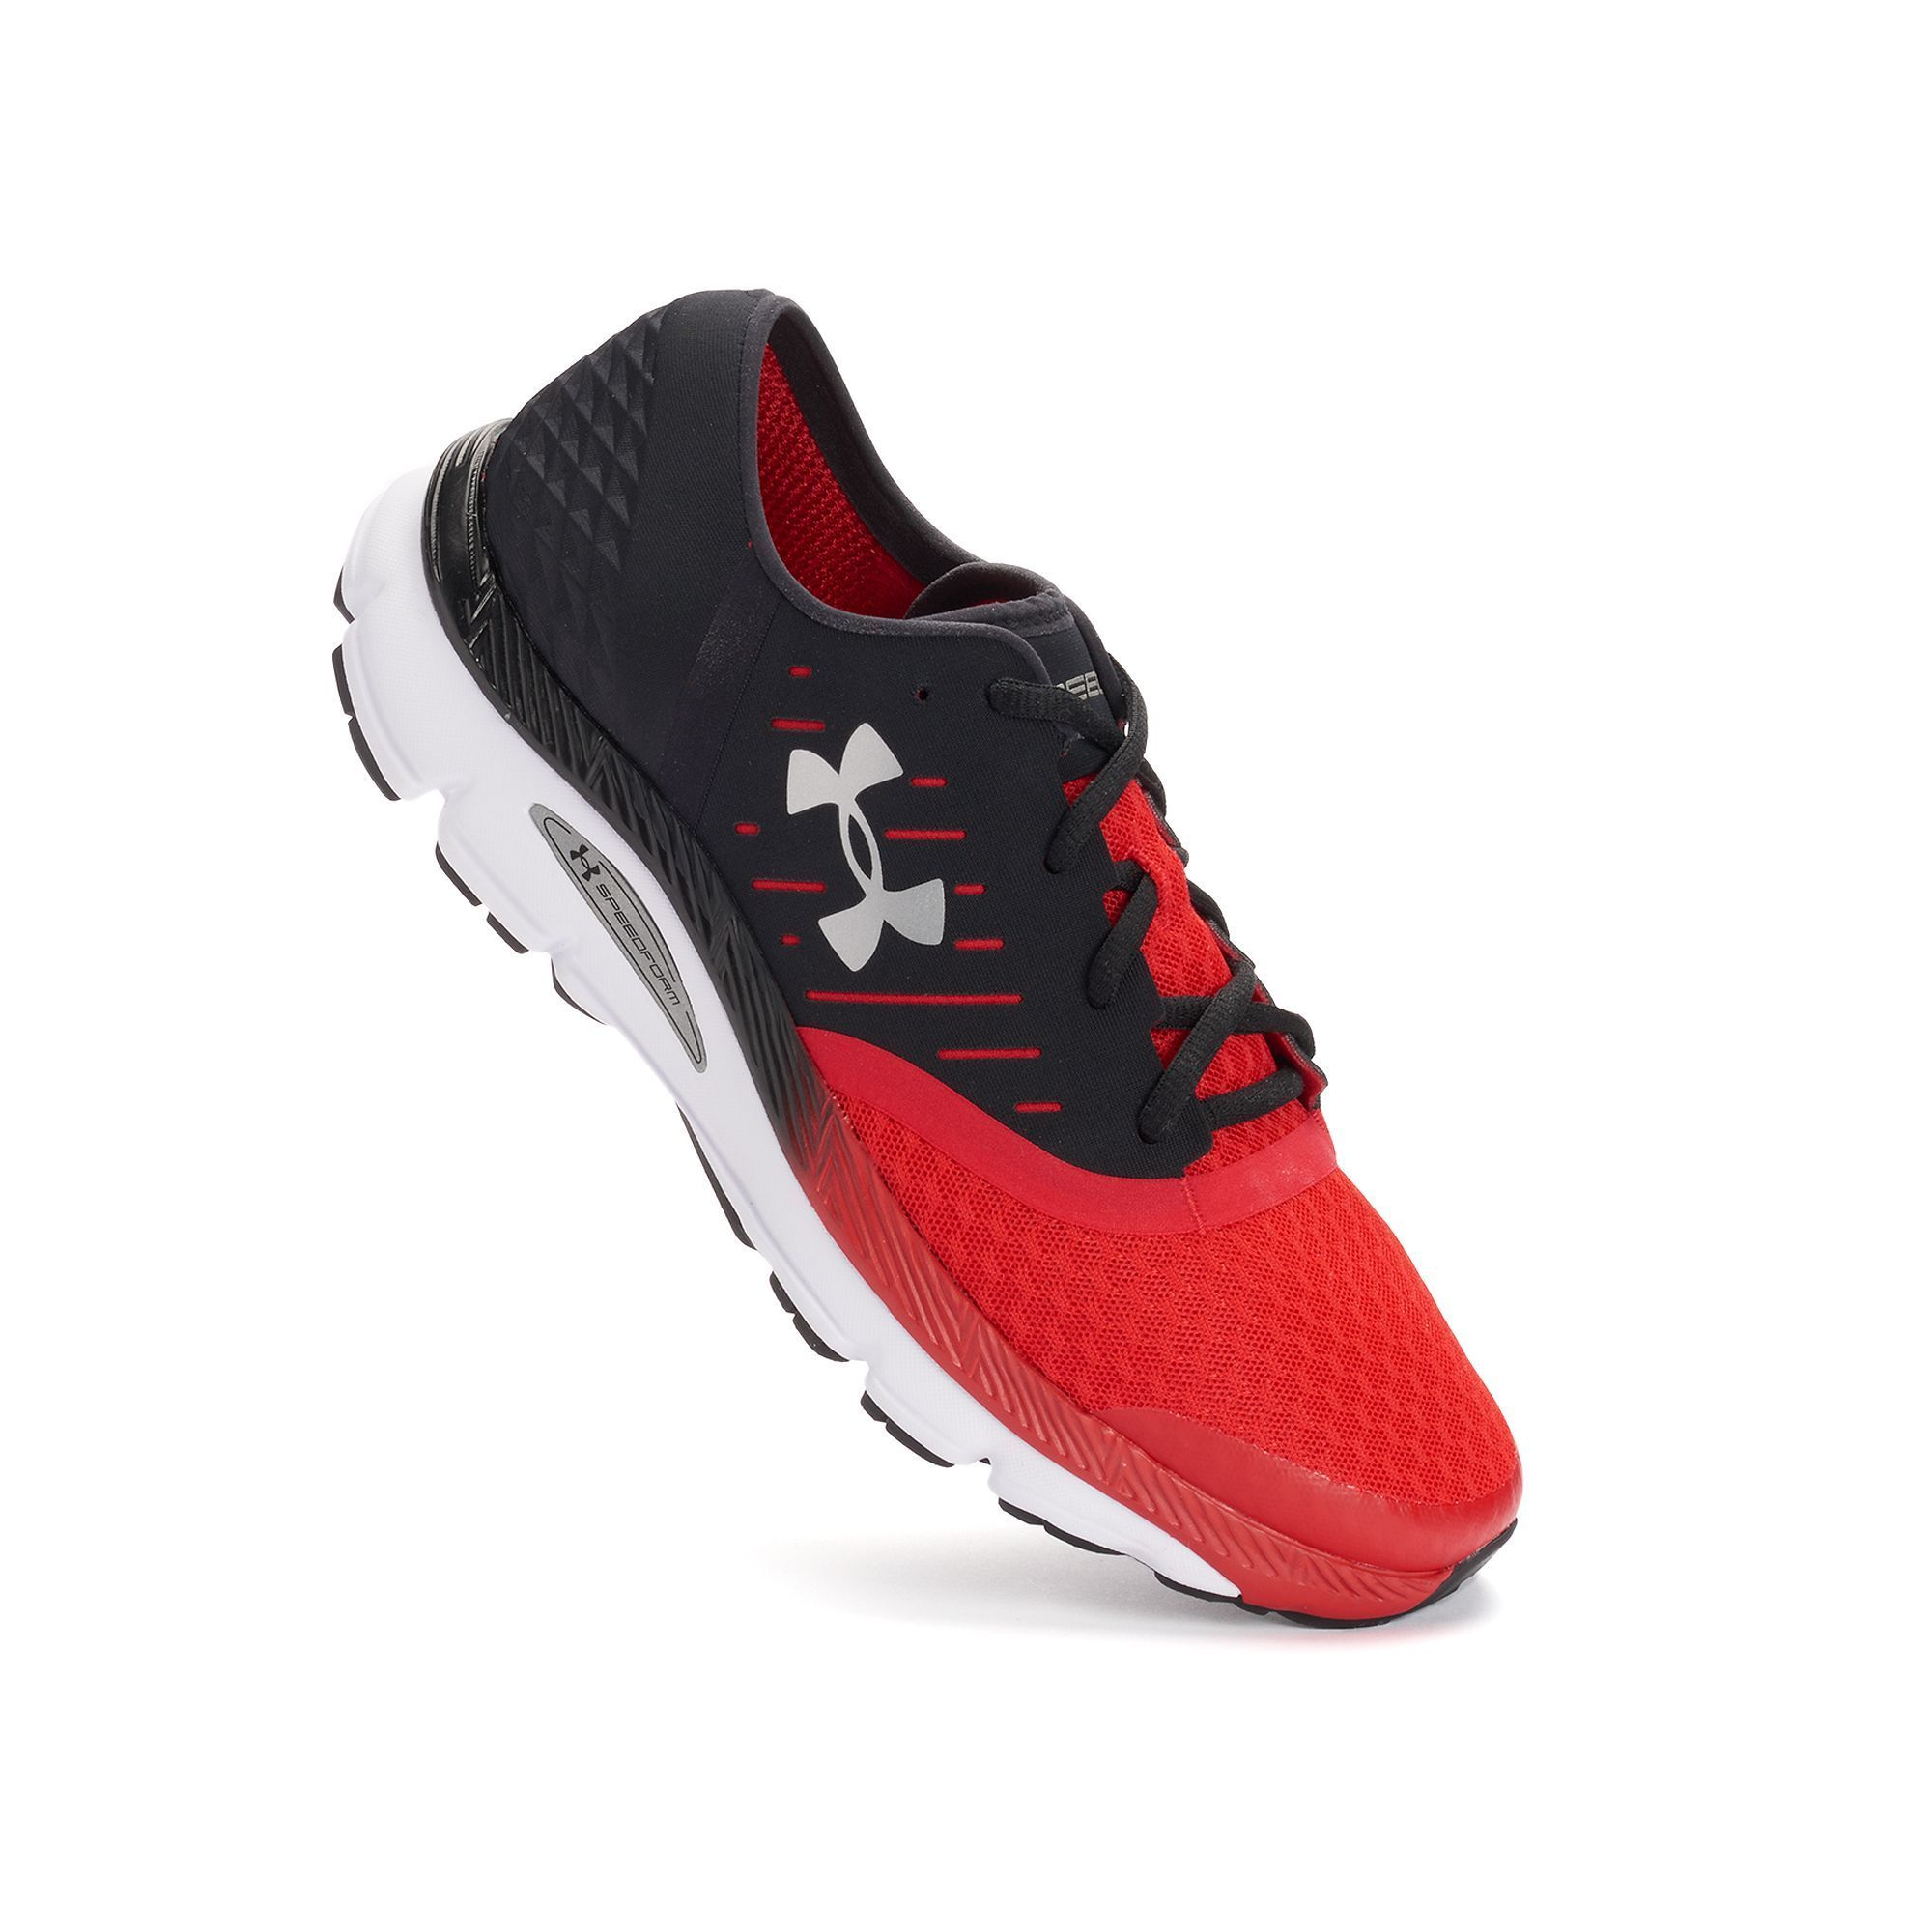 Under Armour SpeedForm Intake Men's Running Shoes, Size: 11.5, Black